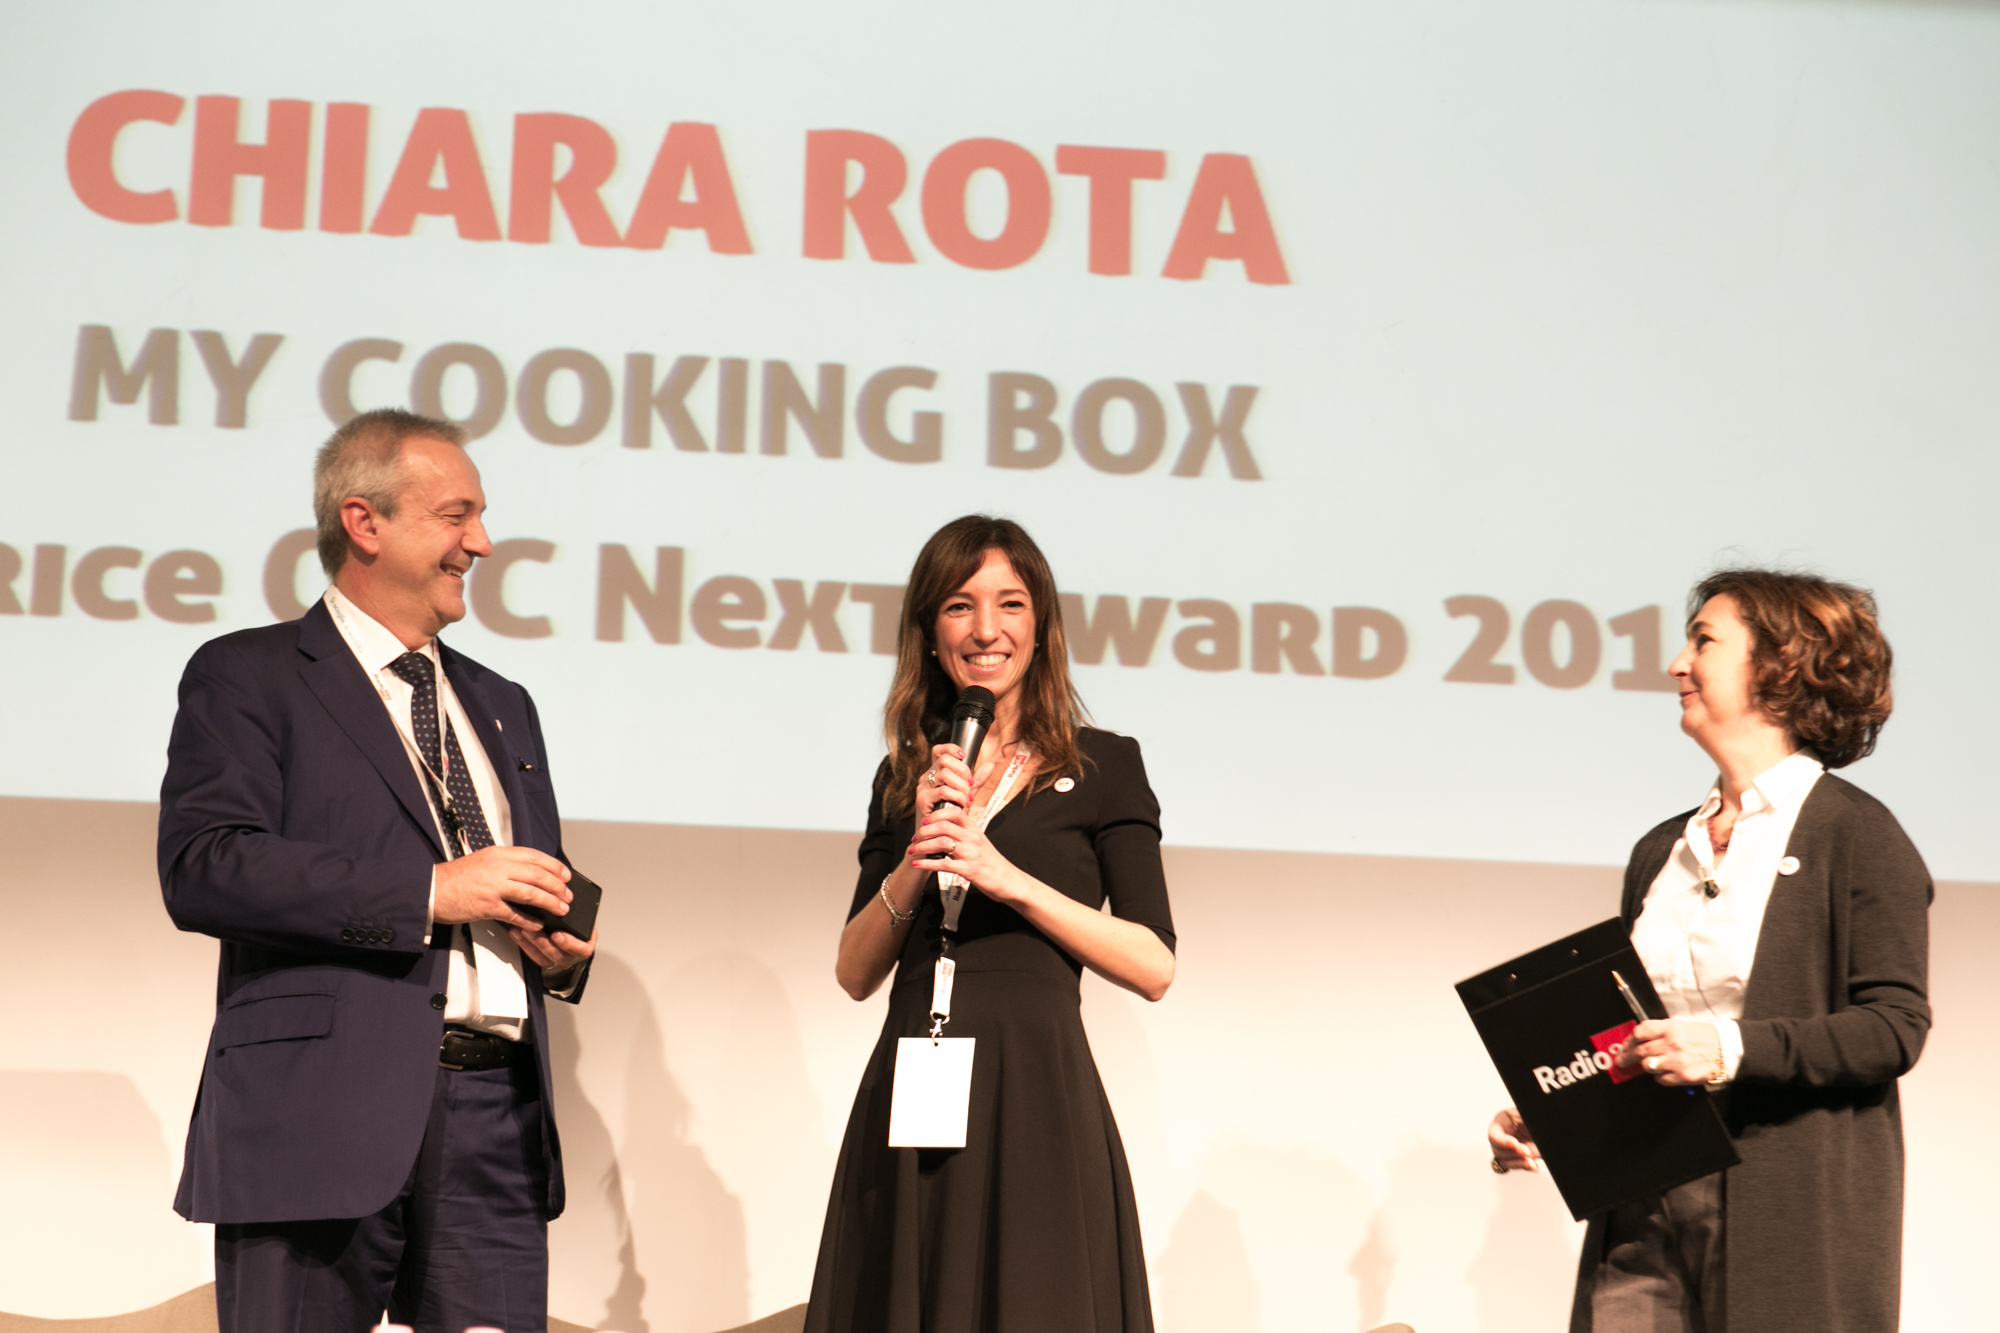 Gusto e passione in una scatola: My Cooking Box